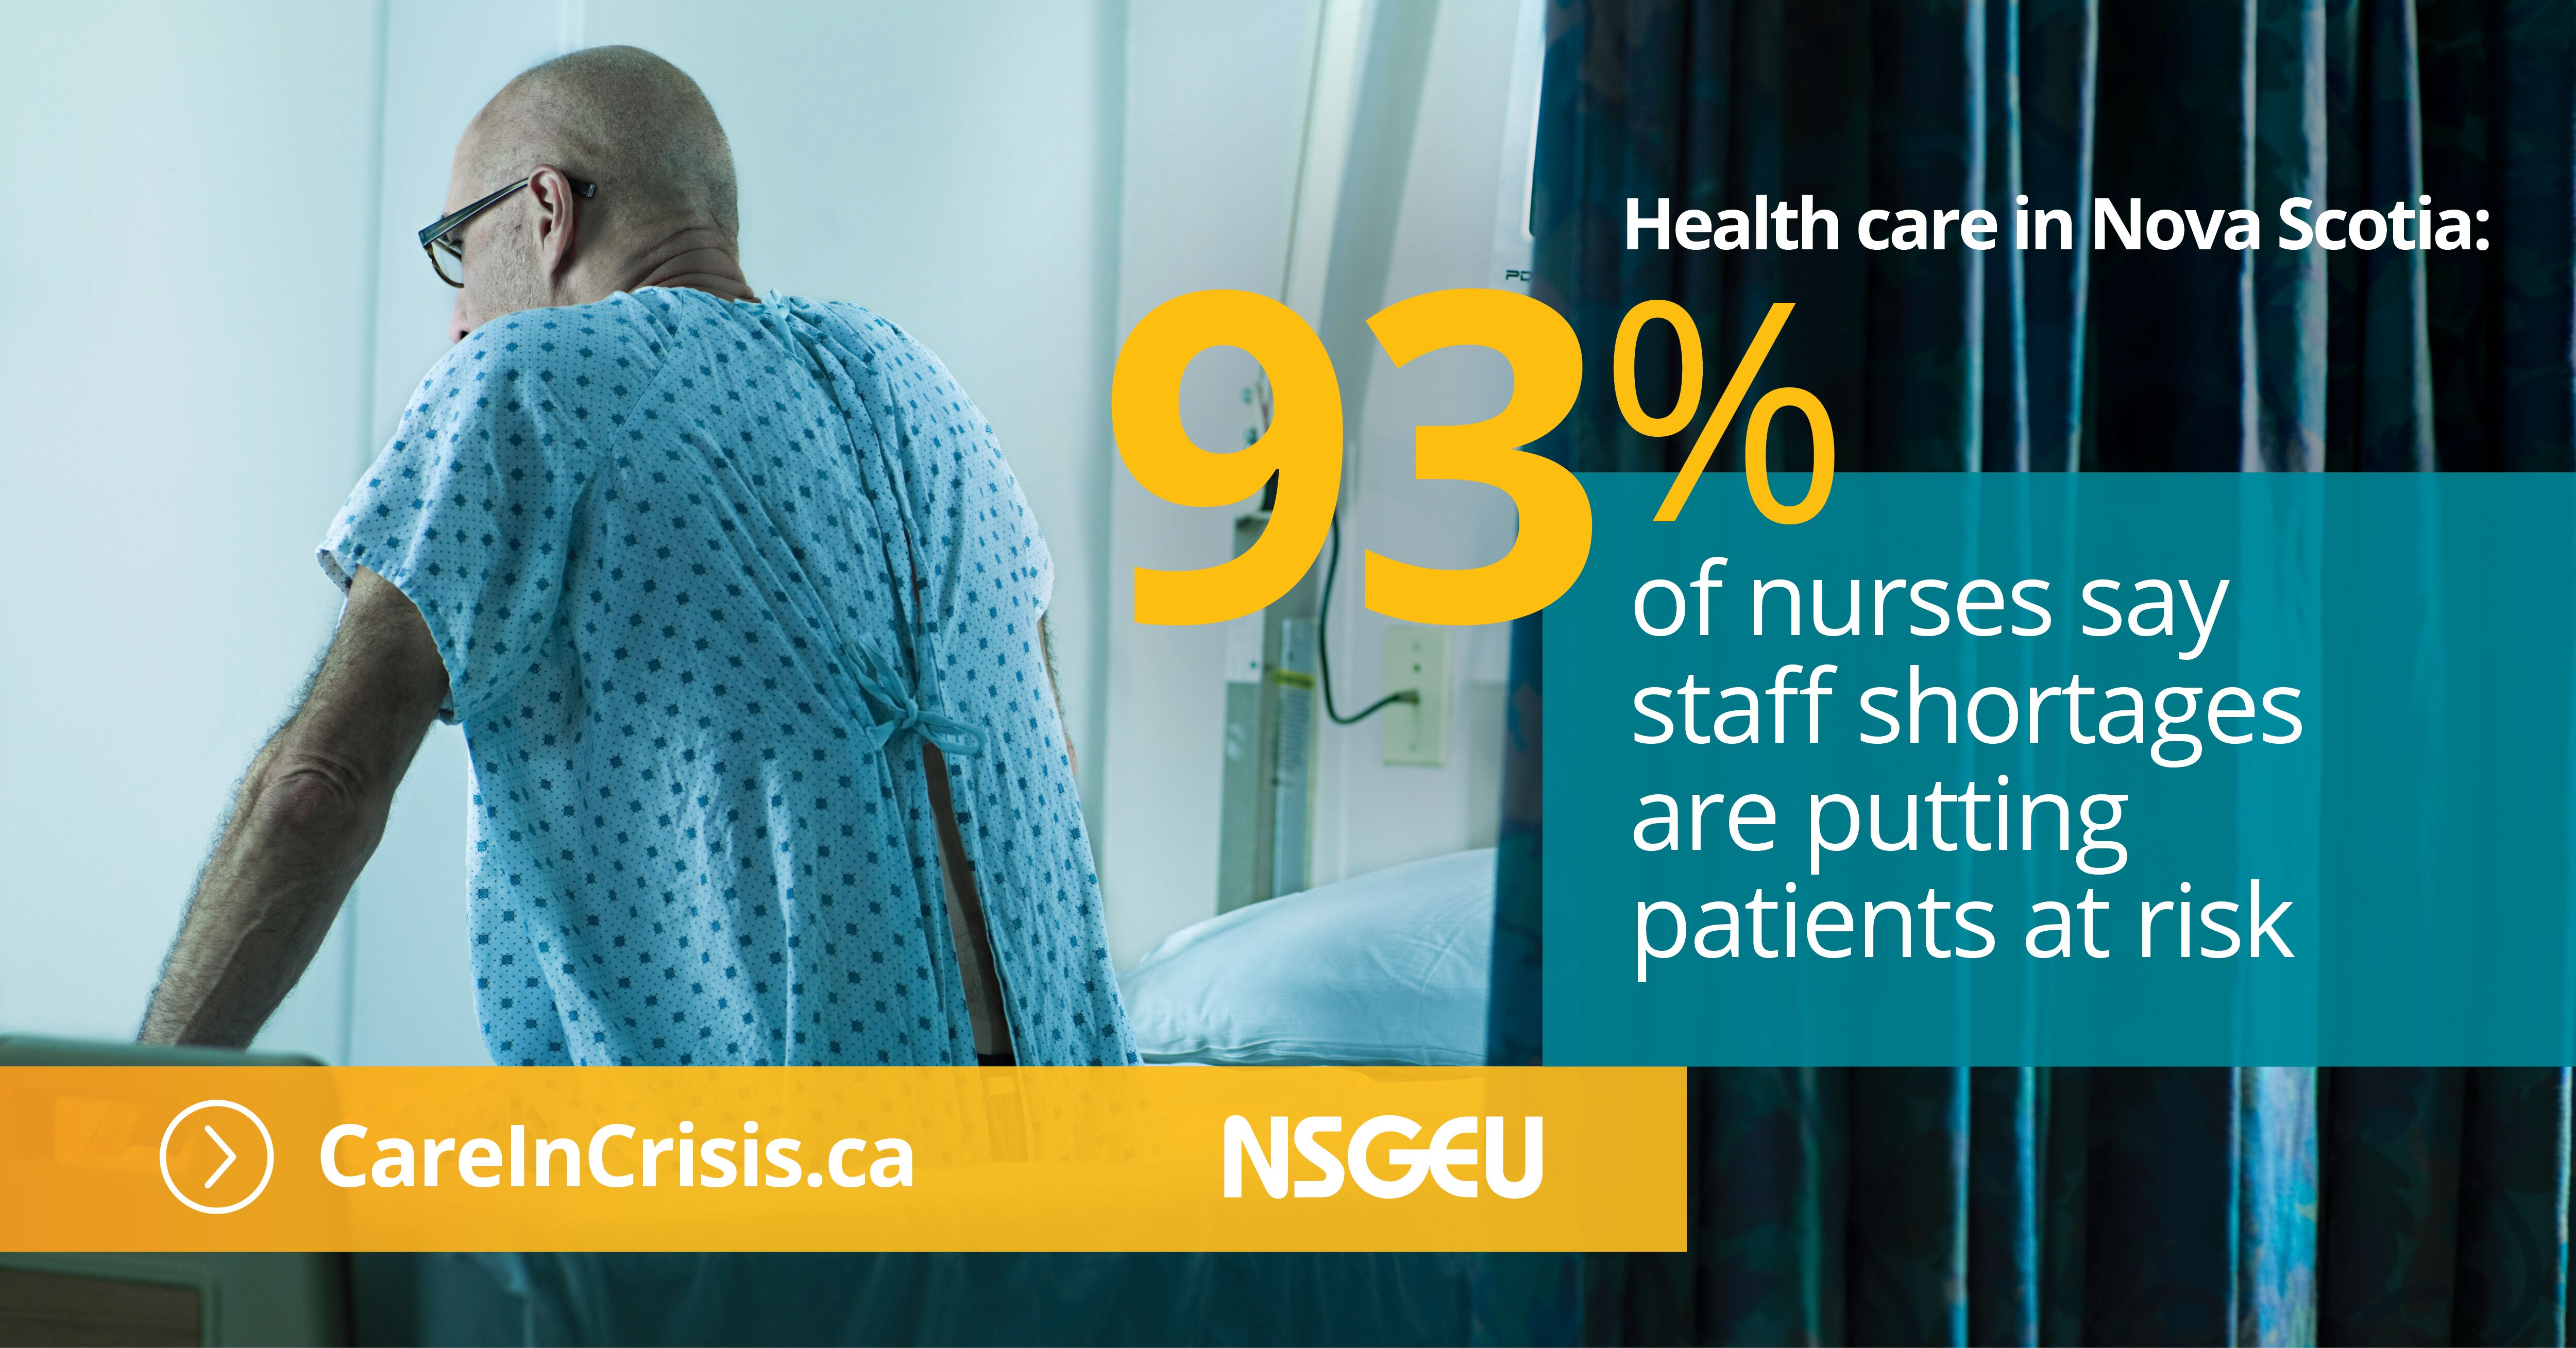 93% of nurses say staff shortages are putting patients at risk.